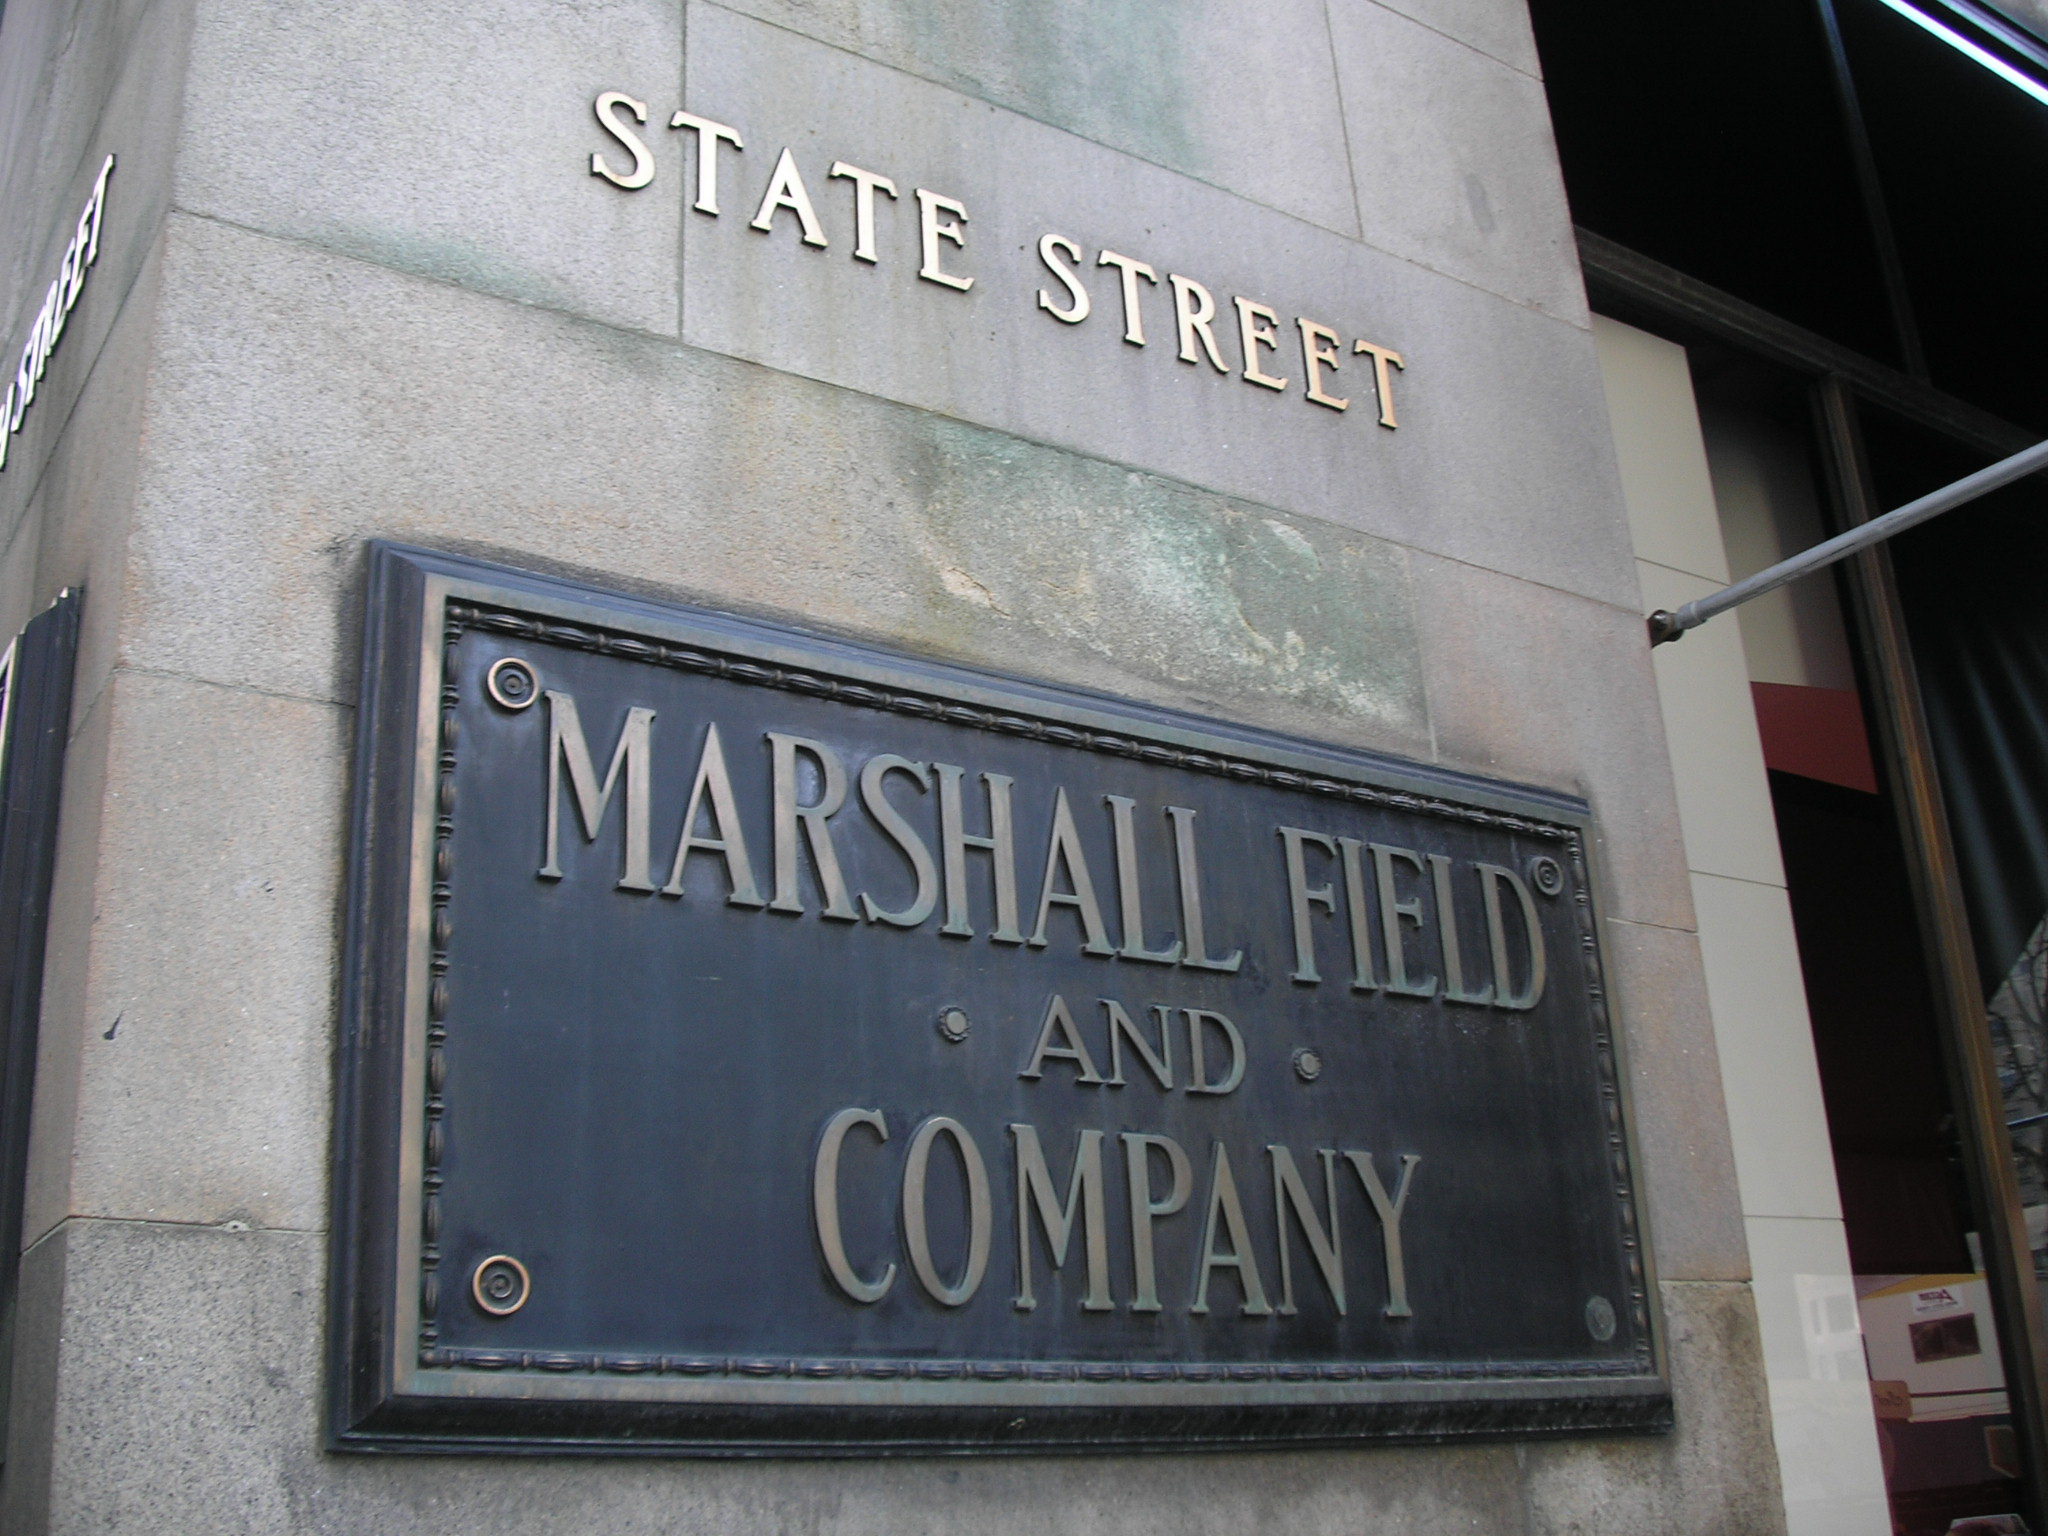 State street sign of marshall field's